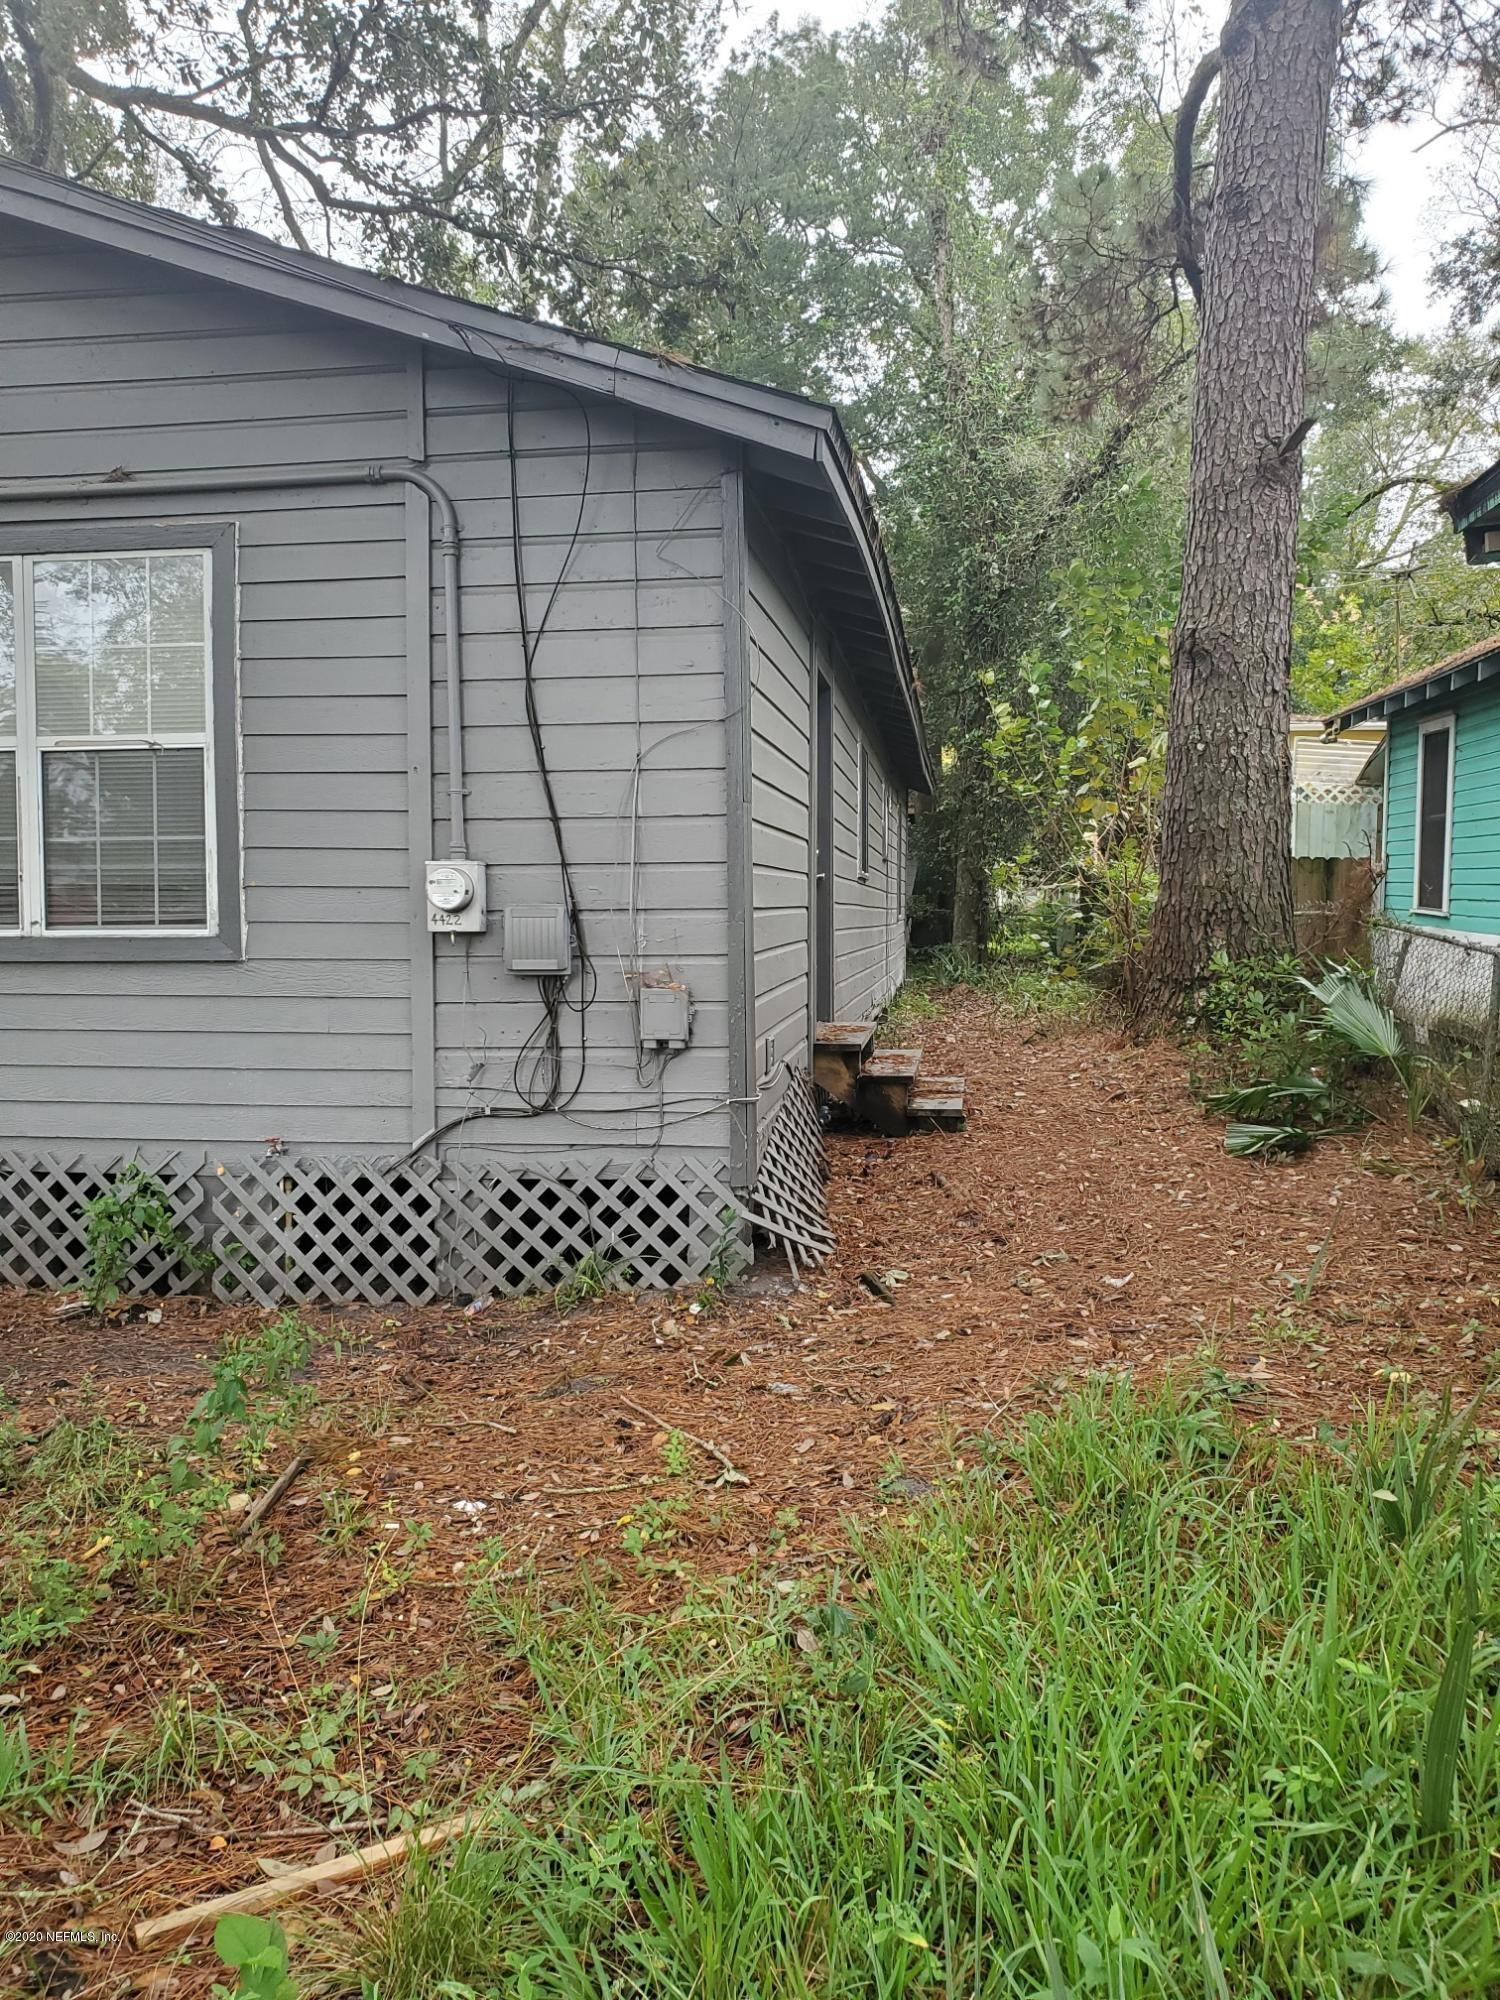 4422 WILSON, JACKSONVILLE, FLORIDA 32209, 3 Bedrooms Bedrooms, ,2 BathroomsBathrooms,Residential,For sale,WILSON,1082014